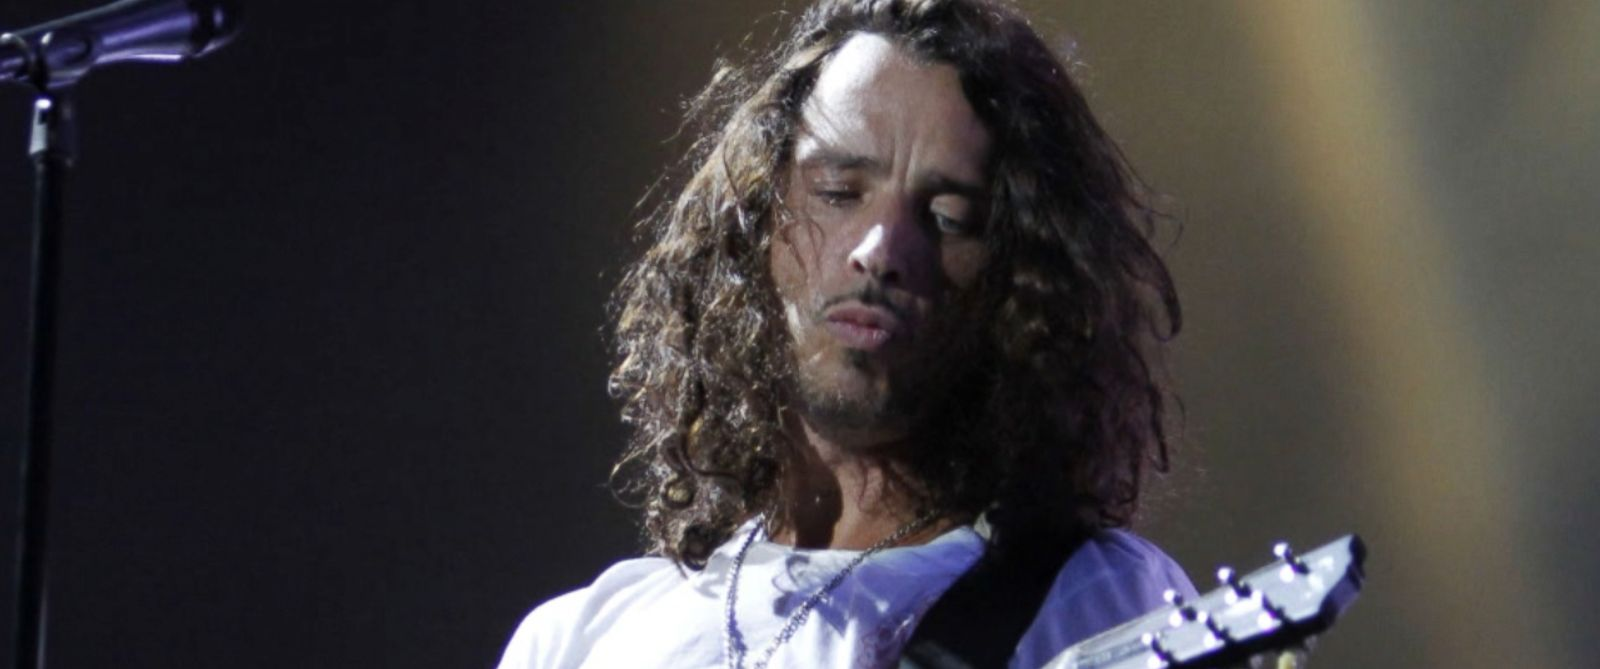 VIDEO: The acclaimed musician was found dead at the age of 52 Thursday.